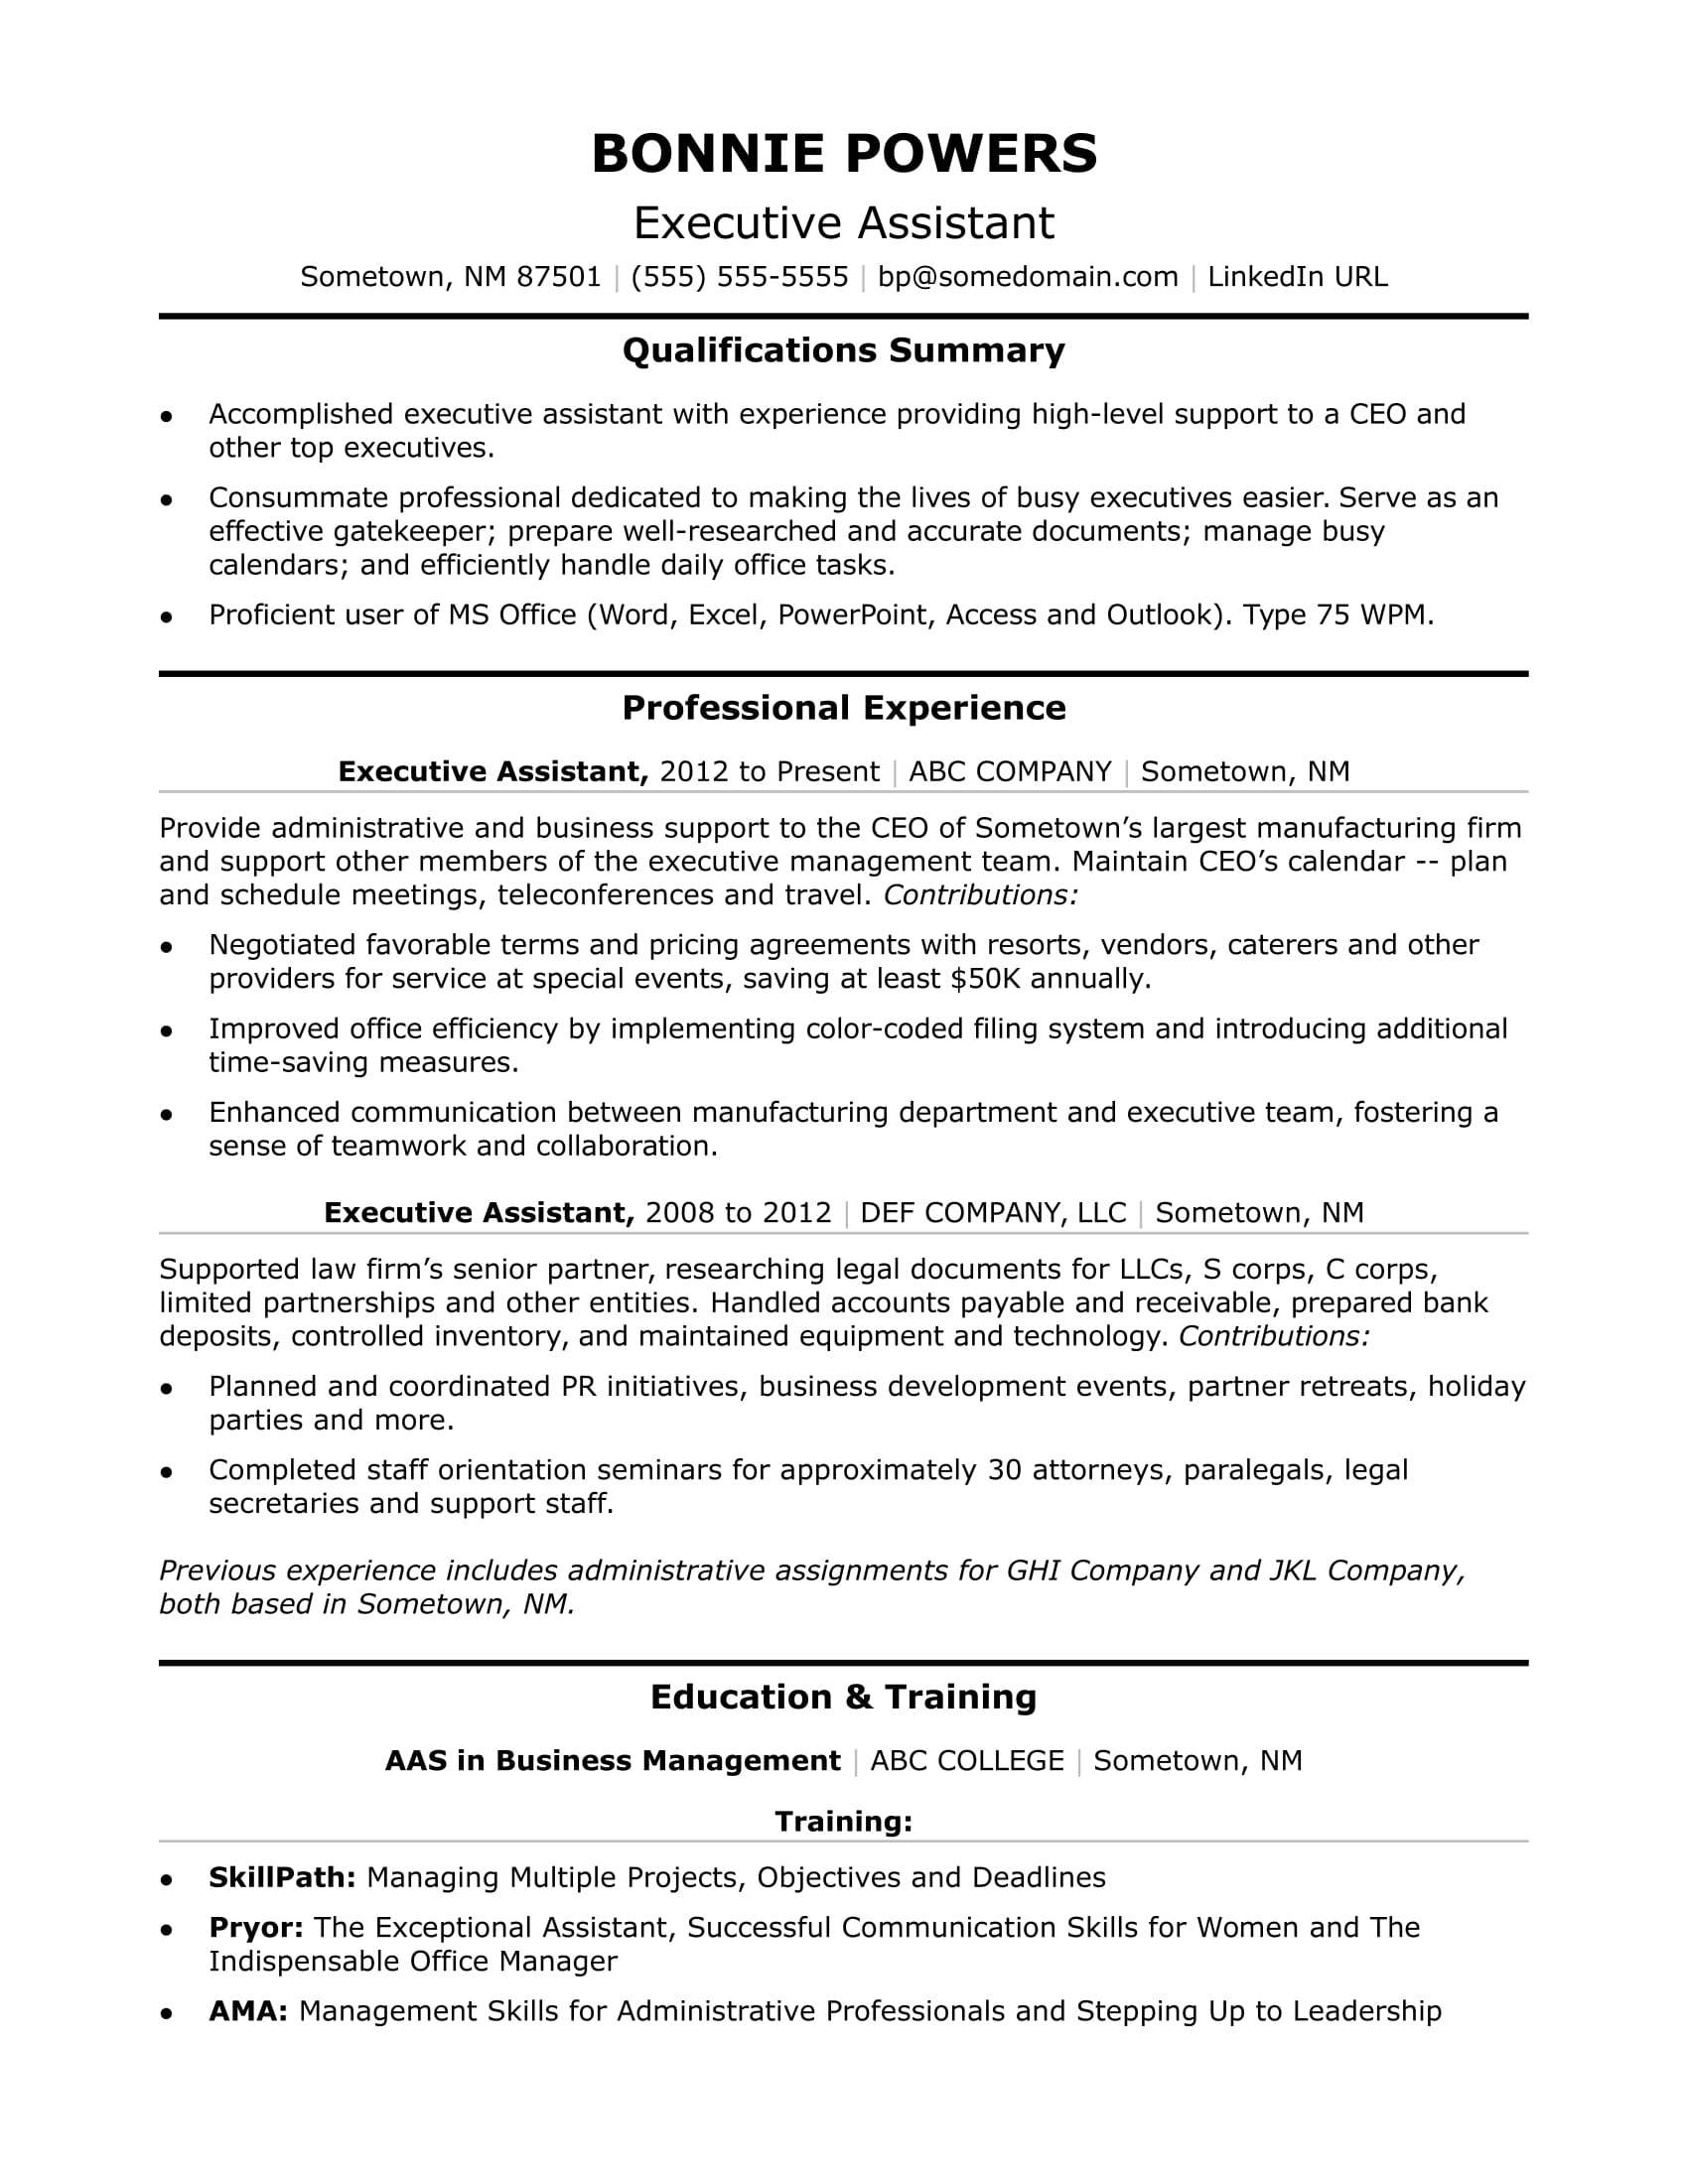 executive administrative assistant resume sample monster personal job duties for computer Resume Personal Assistant Job Duties For Resume